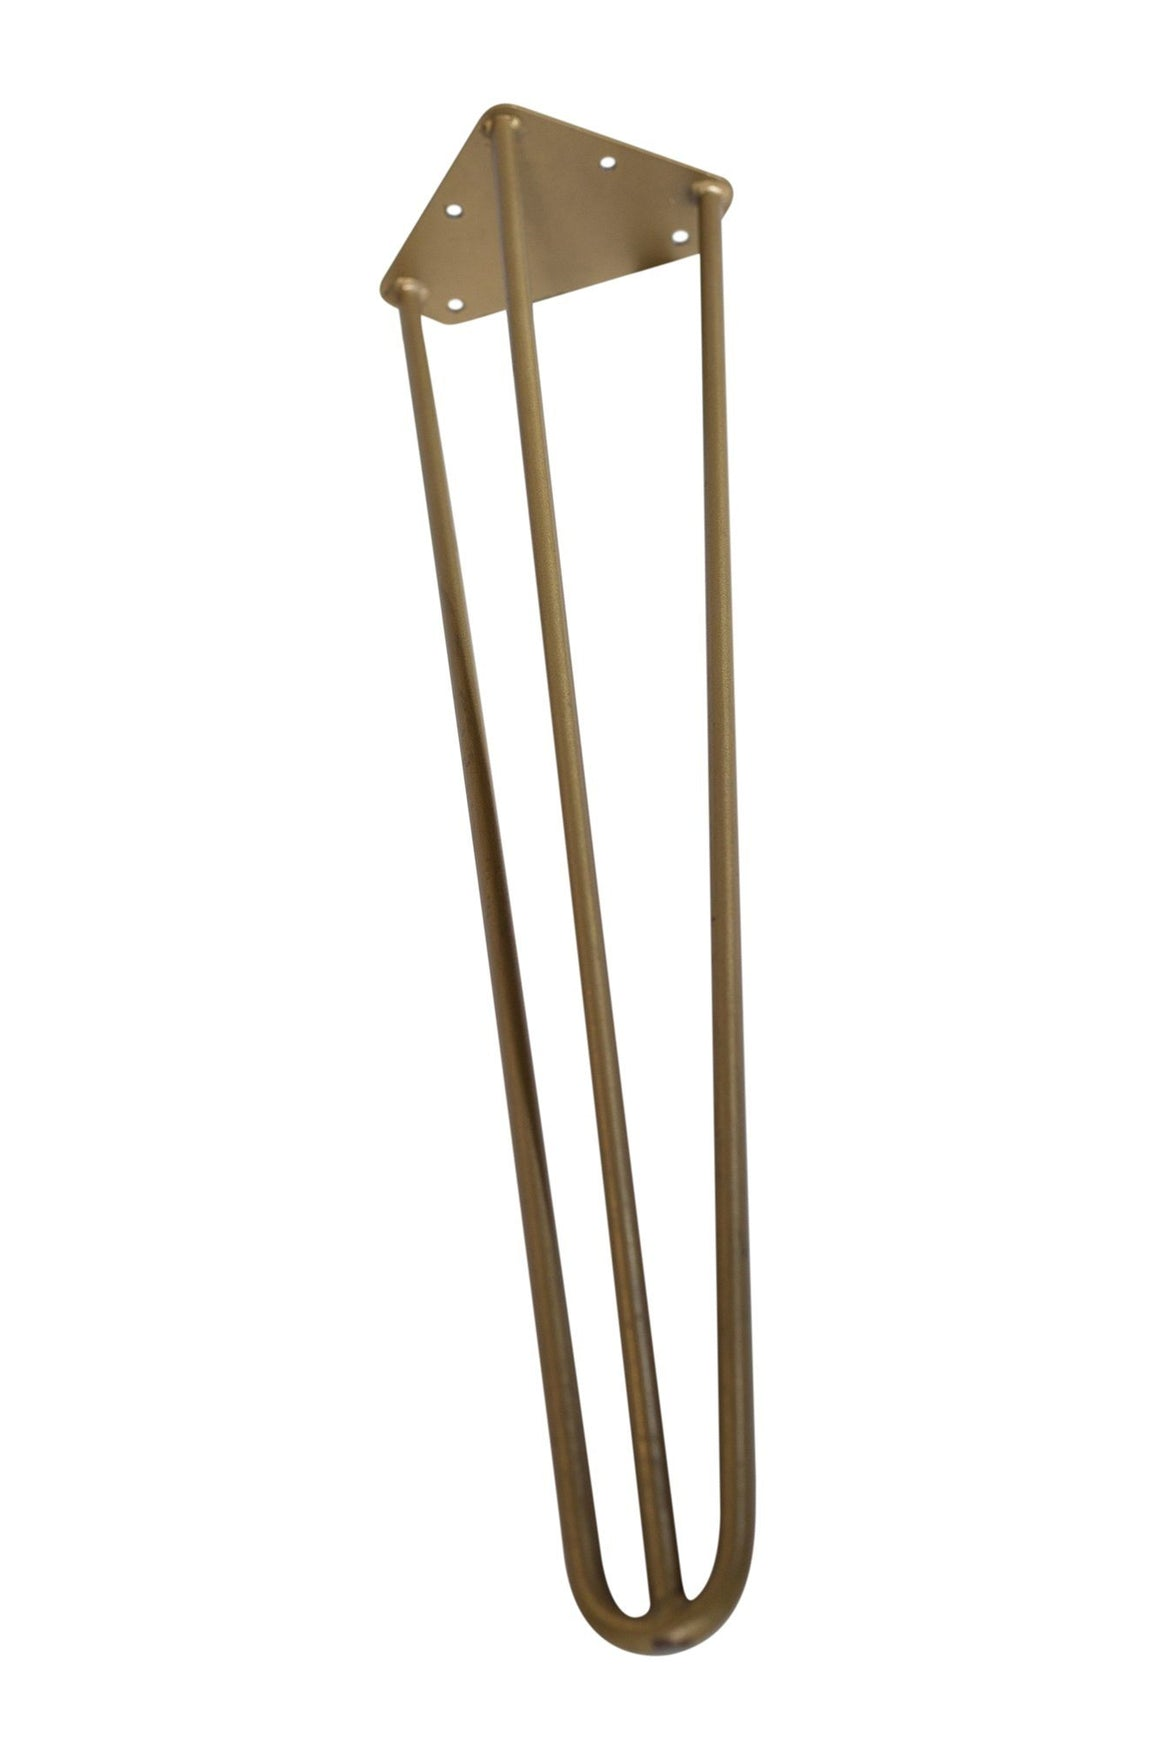 "Premium 3 Rod Hairpin Legs 1/2"" Diameter Brass - Set of 4 - Rustic Deco Incorporated"